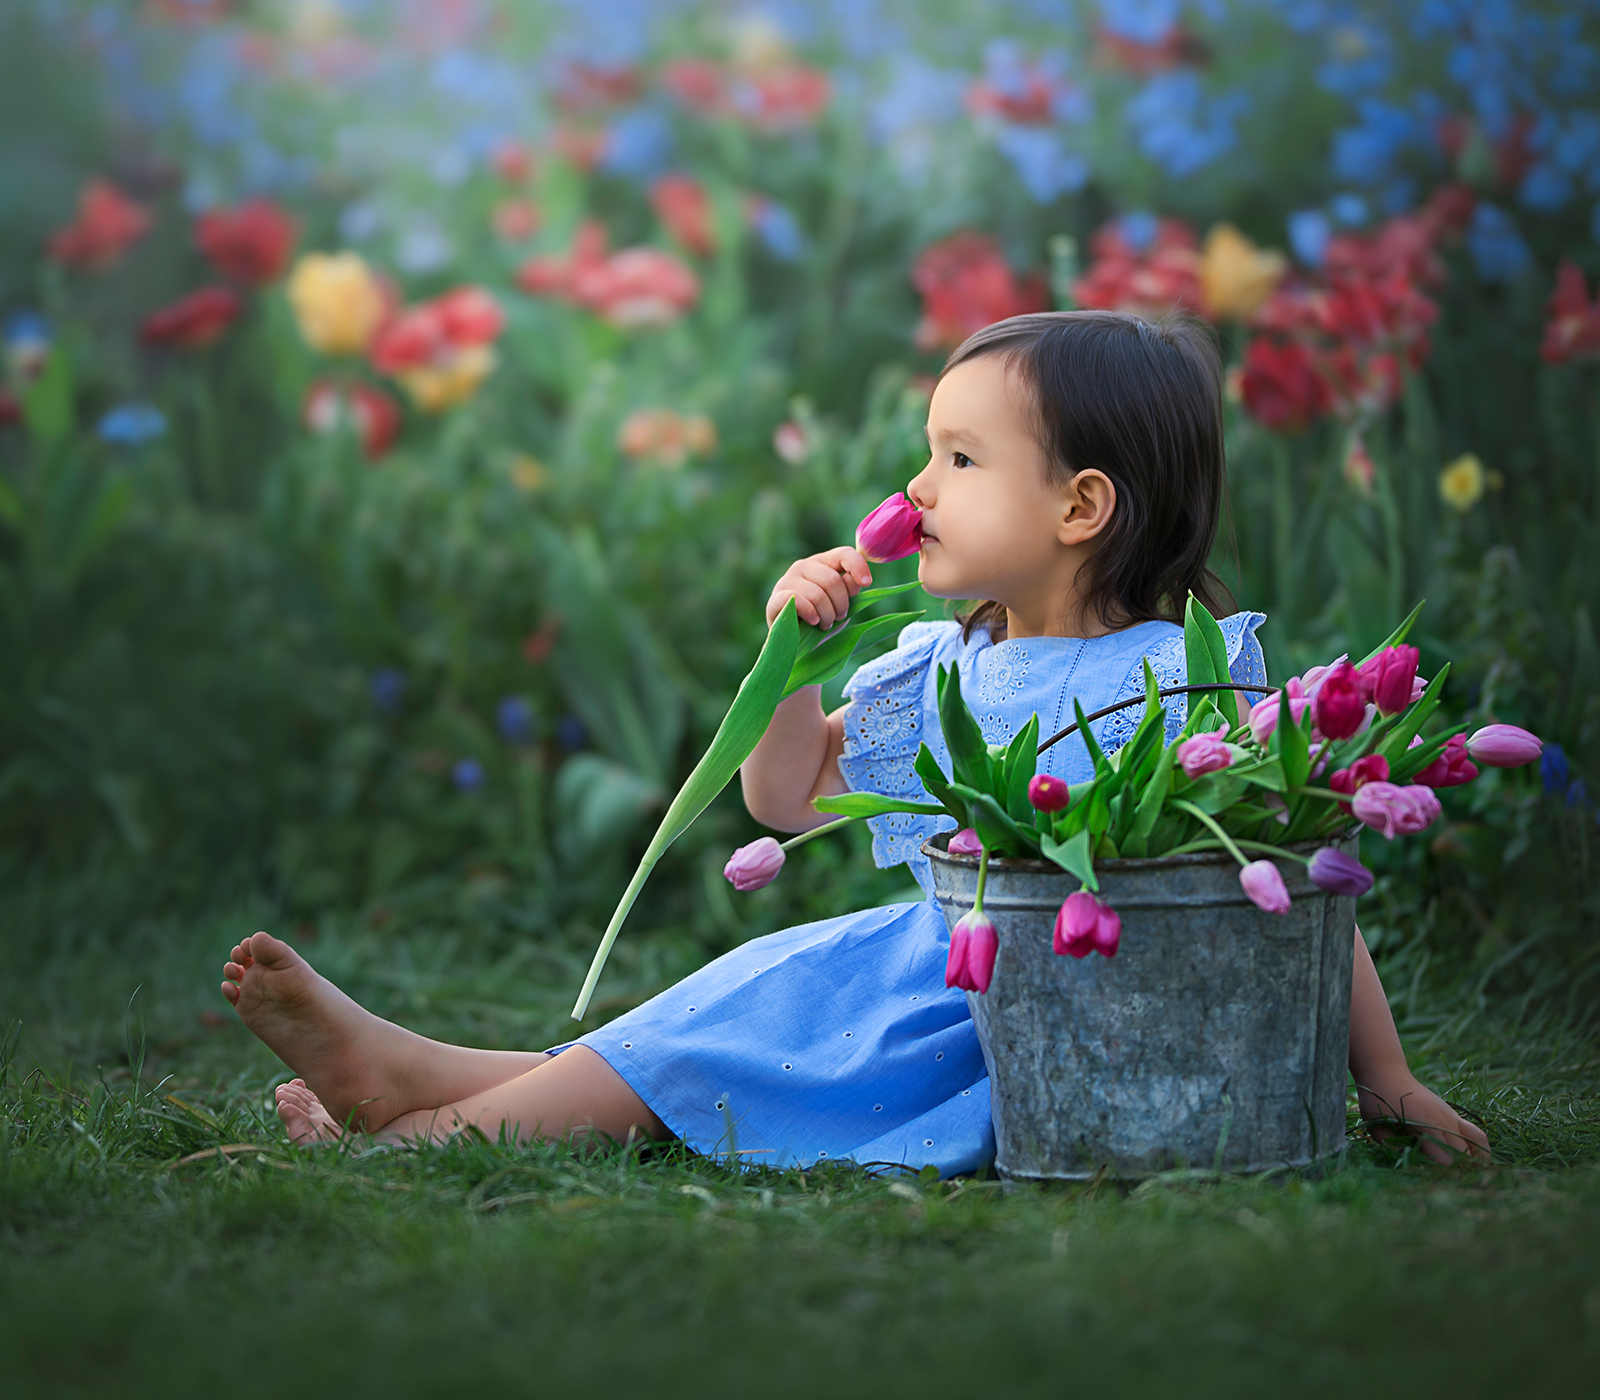 Child and baby photographer DeKalb sycamore geneva little girl in tulips